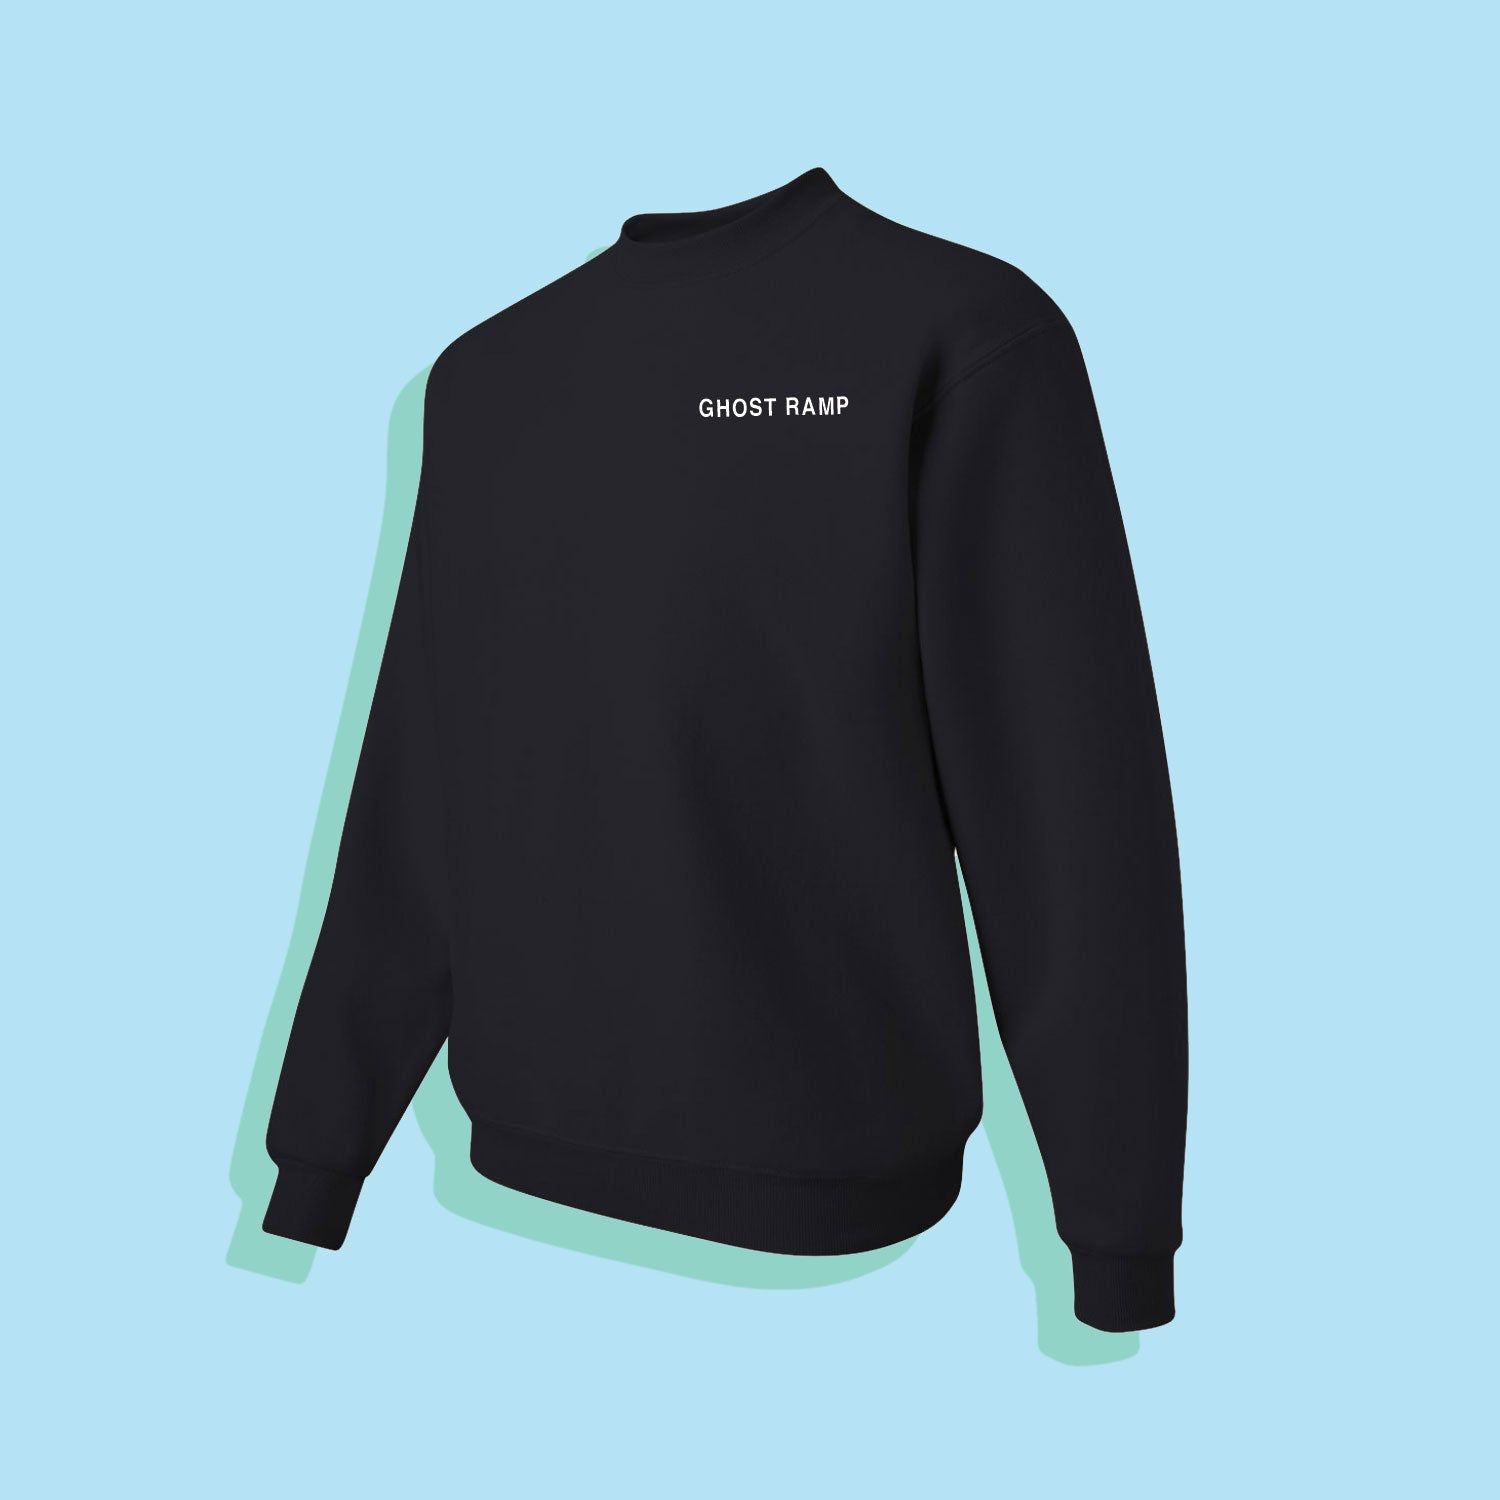 GHOST RAMP CREWNECK - BLACK